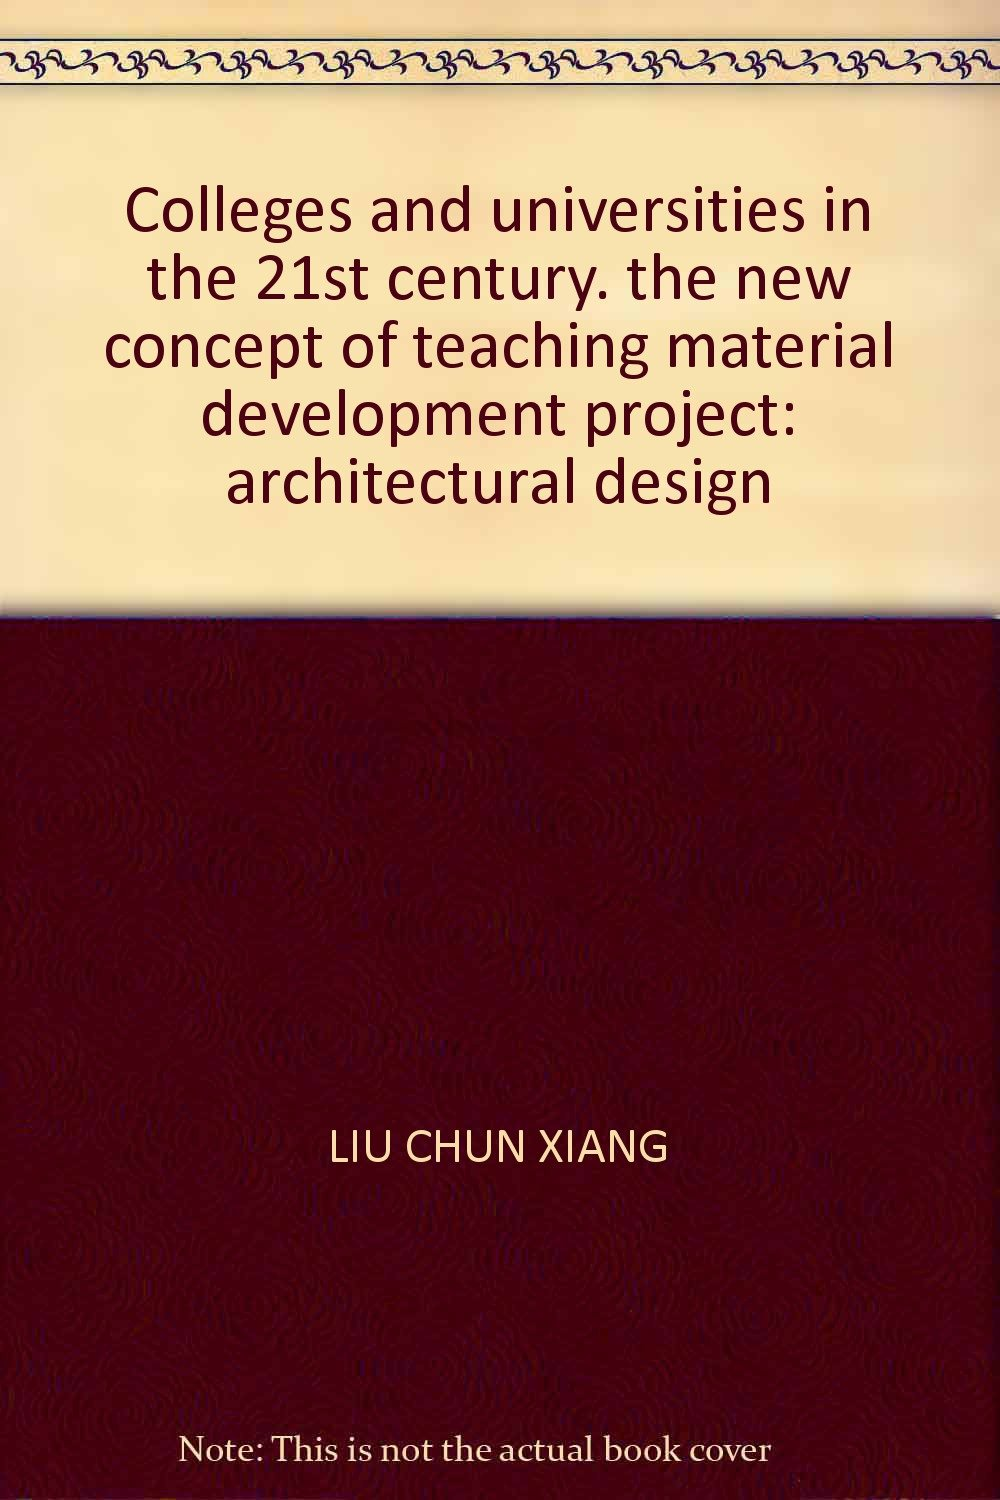 Download Colleges and universities in the 21st century. the new concept of teaching material development project: architectural design pdf